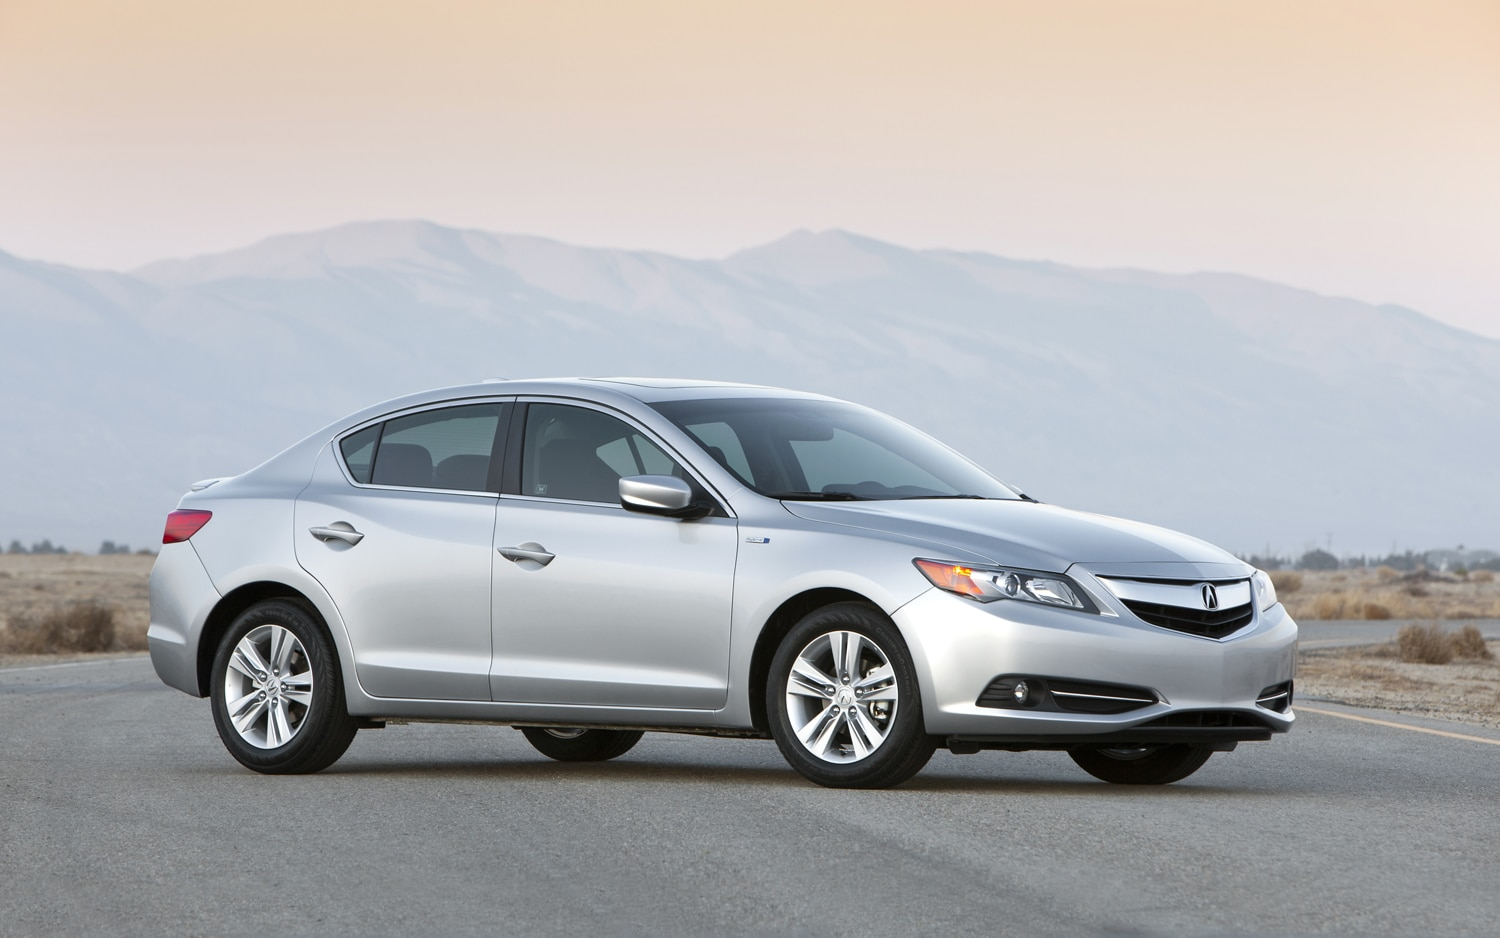 2013 Acura ILX Hybrid Front Three Quarters1